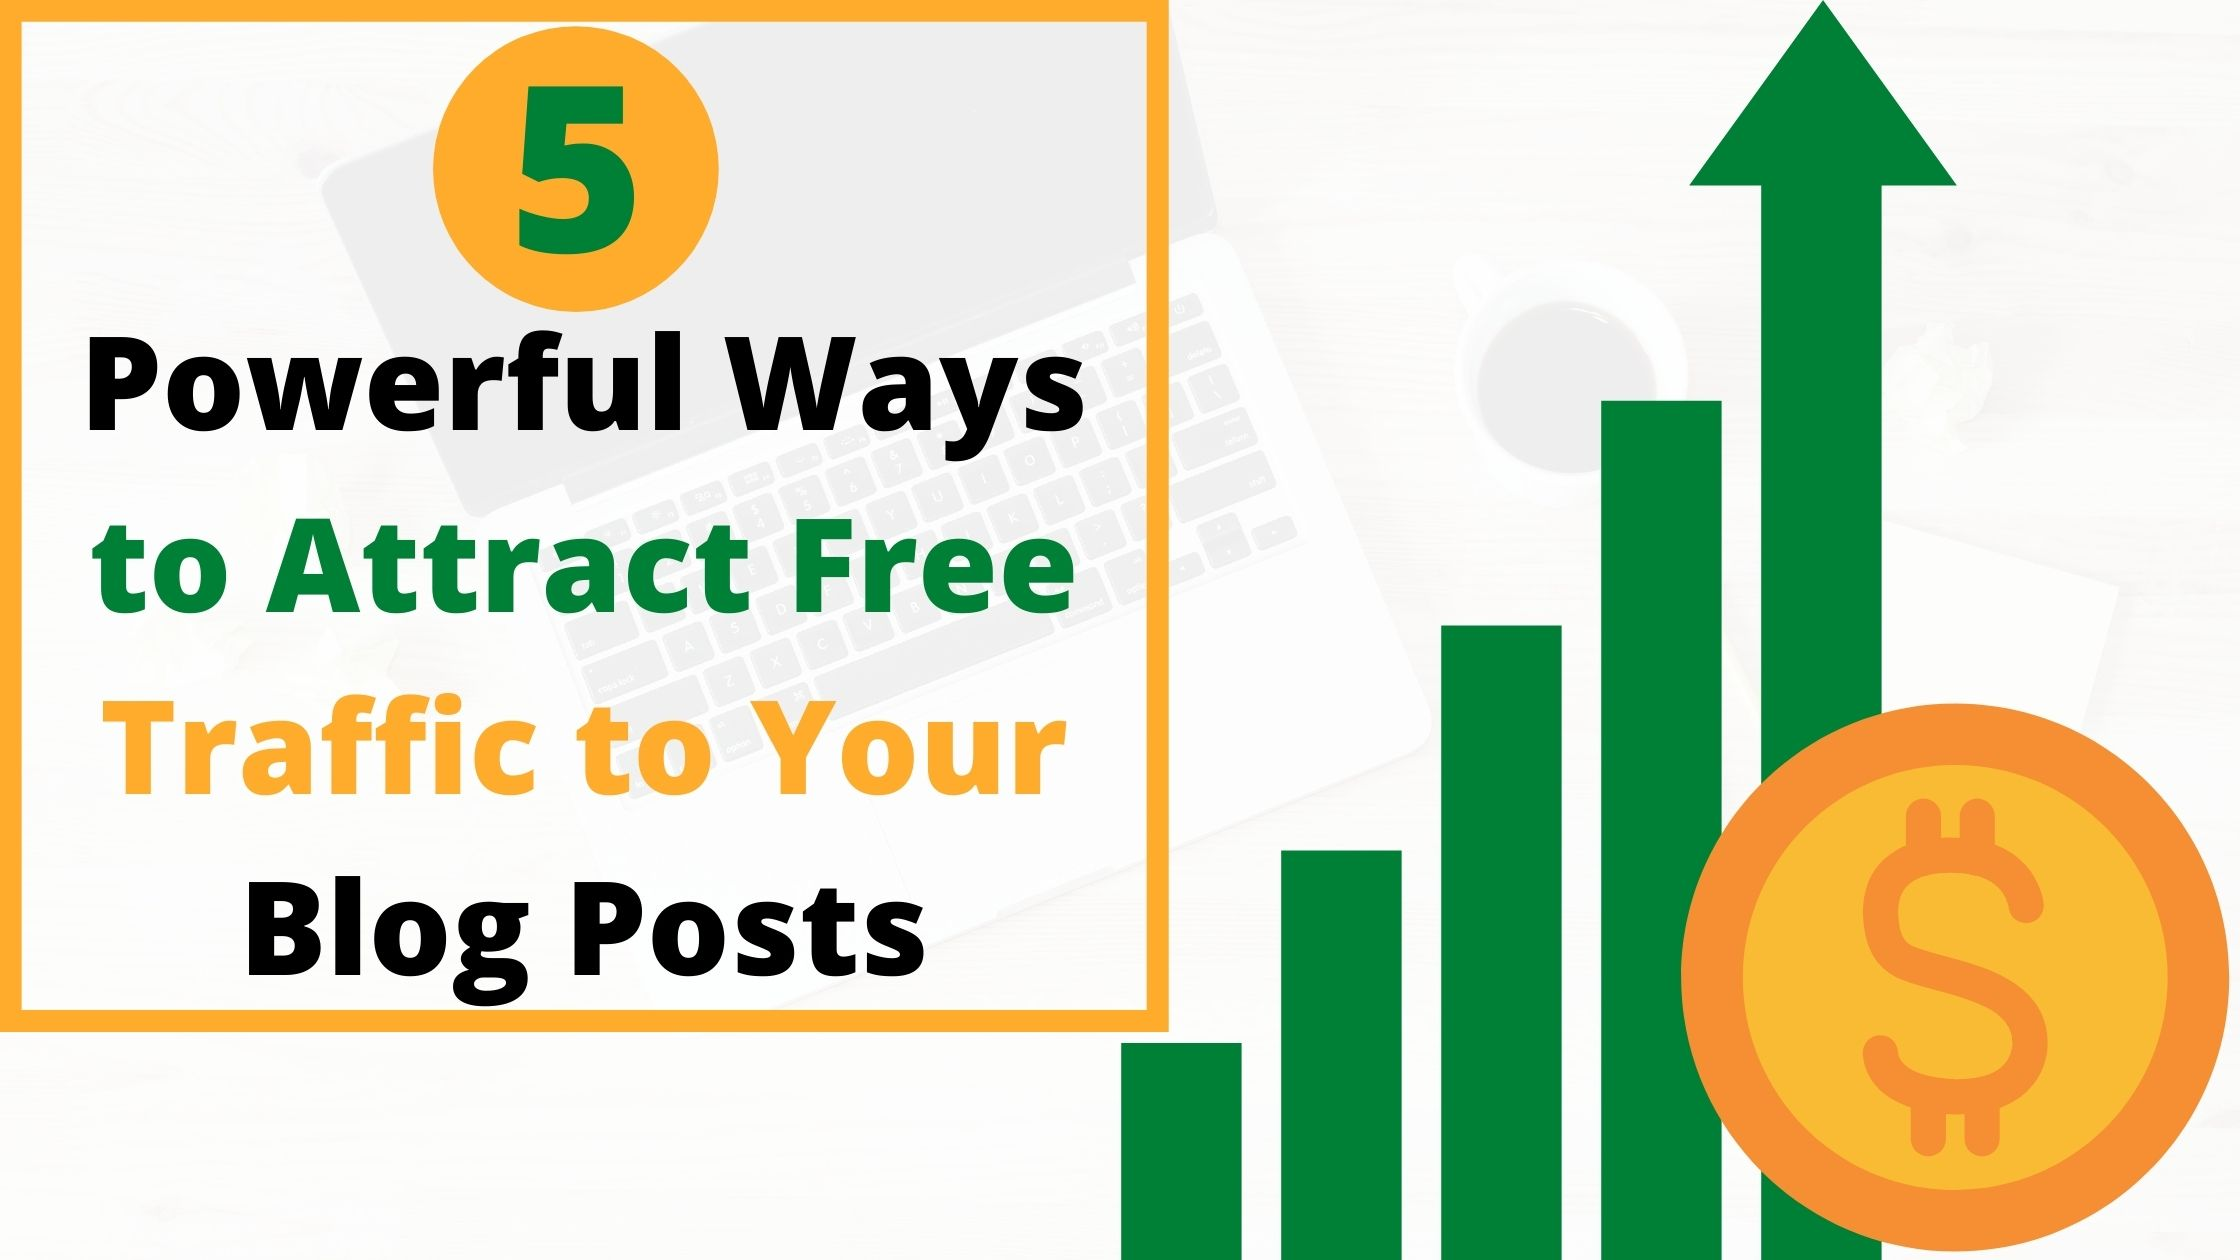 How to get free traffic to blog posts